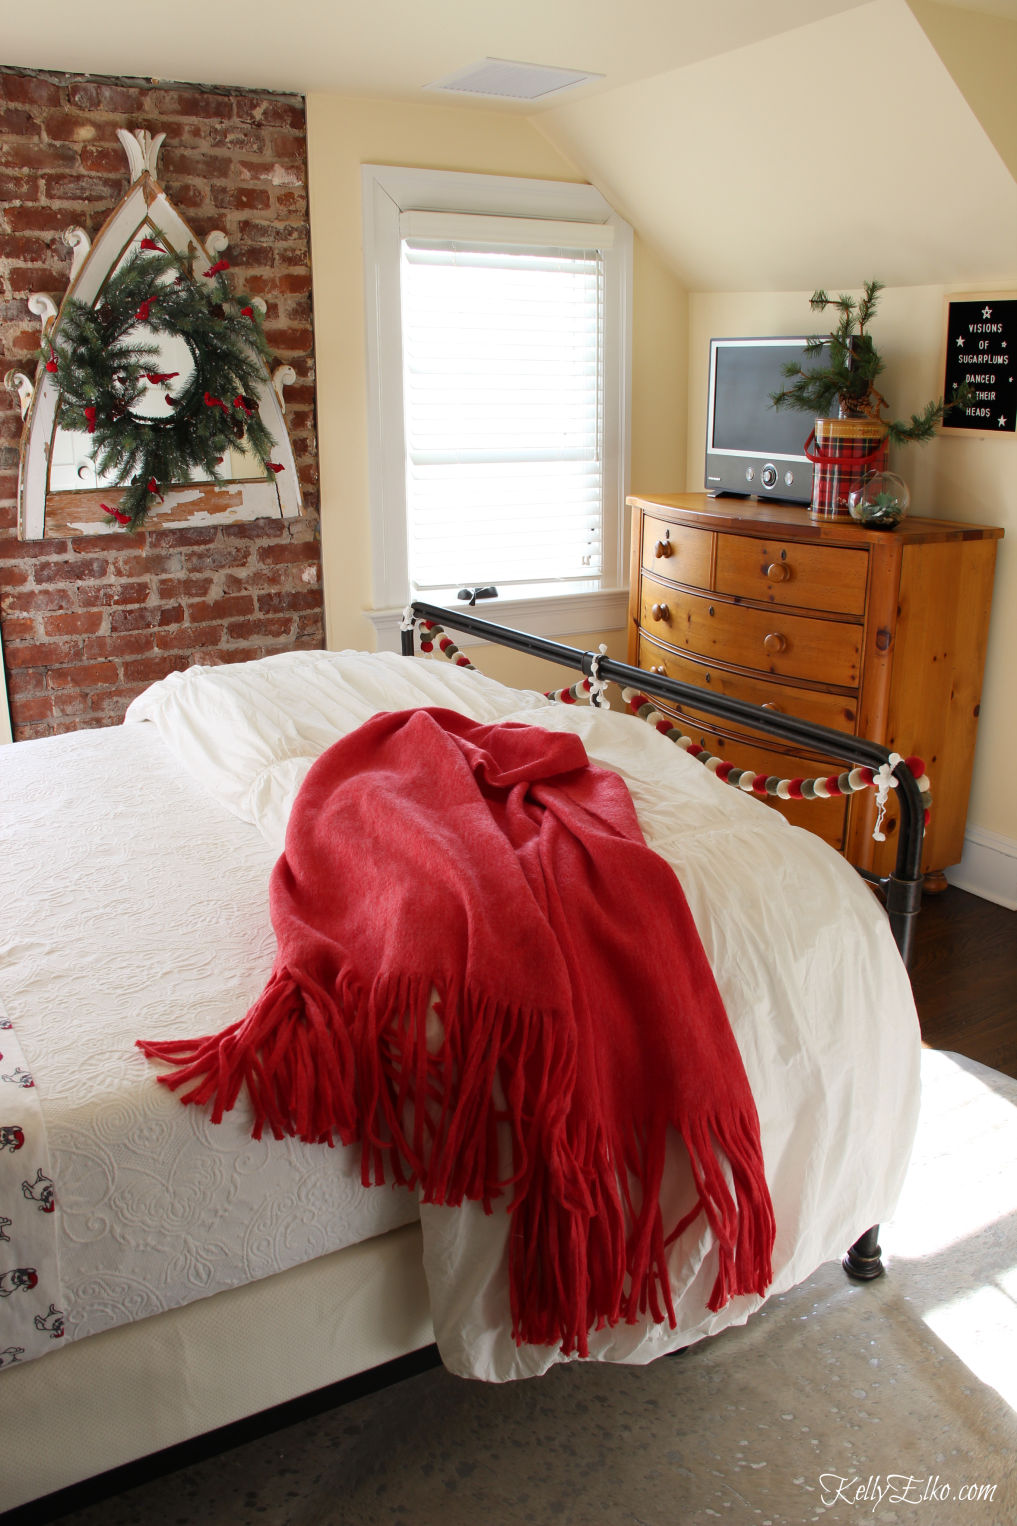 Cozy Christmas Guest Bedroom - love the flannel sheets, fringe throw and other whimsical decorating ideas kellyelko.com #christmas #christmasbedroom #christmasdecor #christmasdecorating #christmasbedding #christmaswreath #vintagechristmas